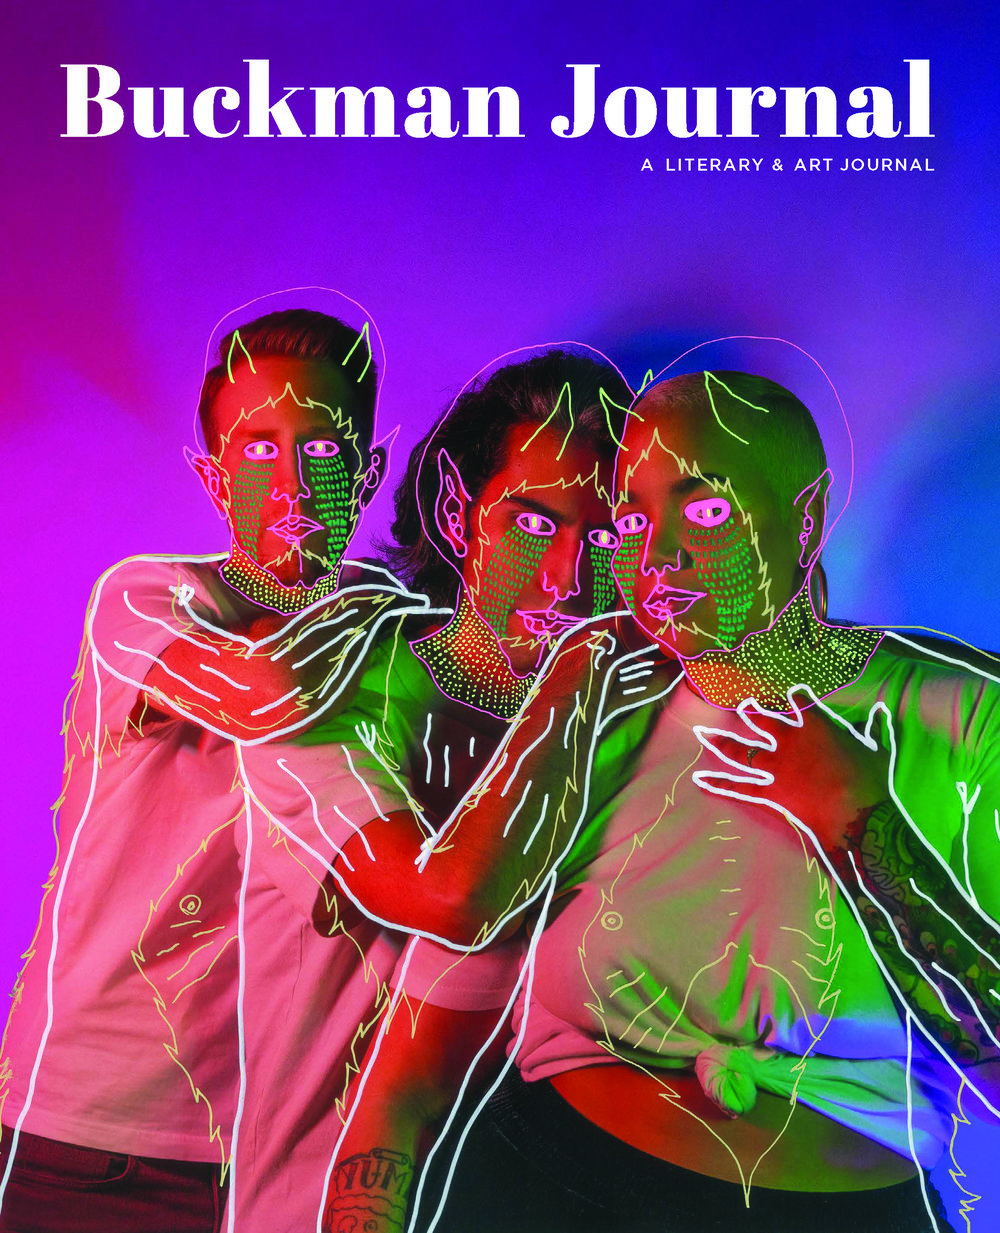 Buckman Journal 002 Launch Party    an art exhibit/meet the writers event    Friday March 8 7p.m    Bunk Bar, SE Water Ave